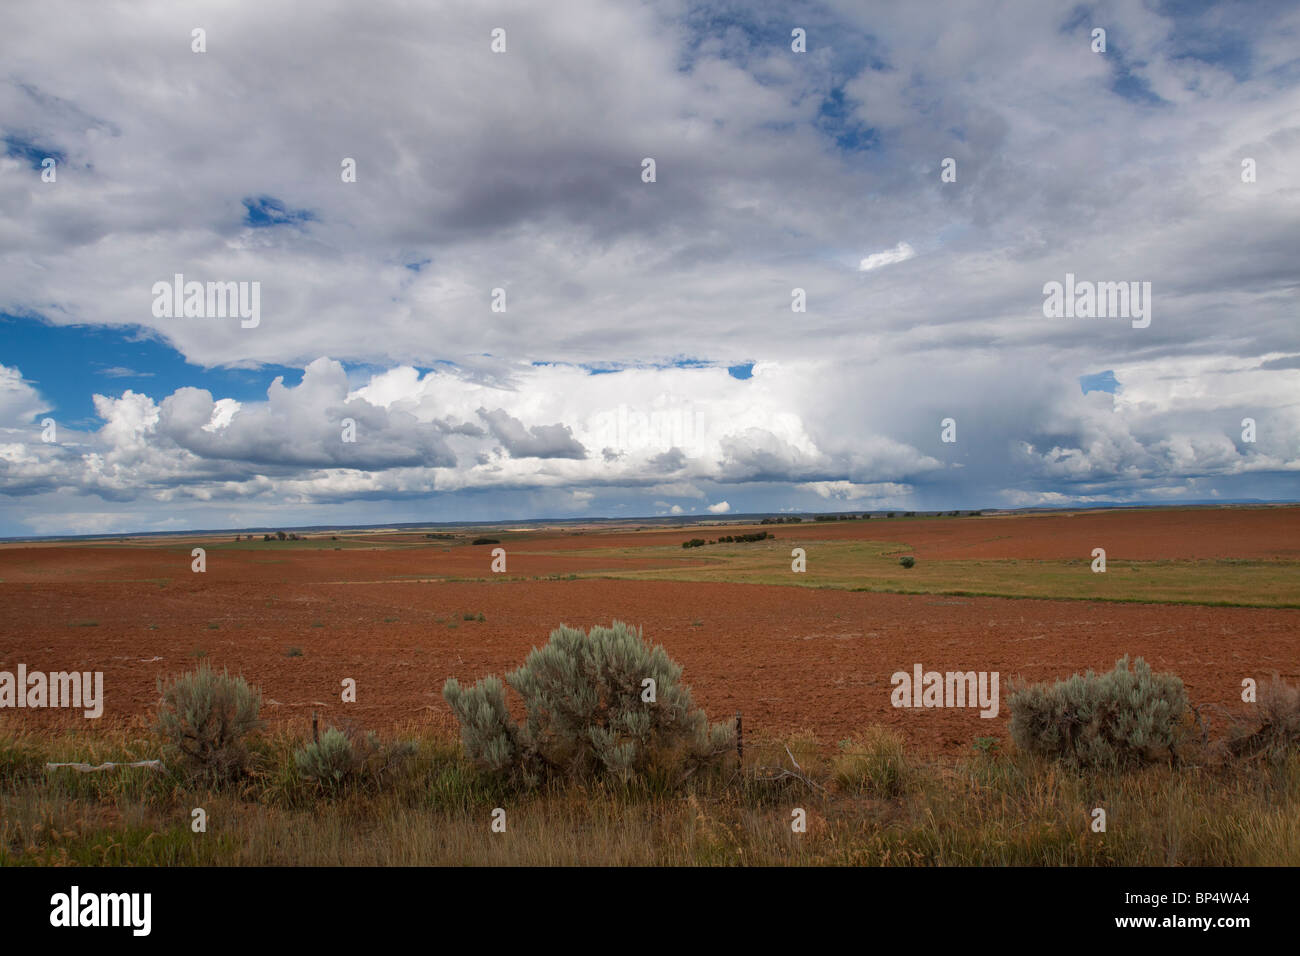 Dramatic cumulus cloud formations looming over a vast field of tilled red soil with sage bushes in southwest Colorado - Stock Image